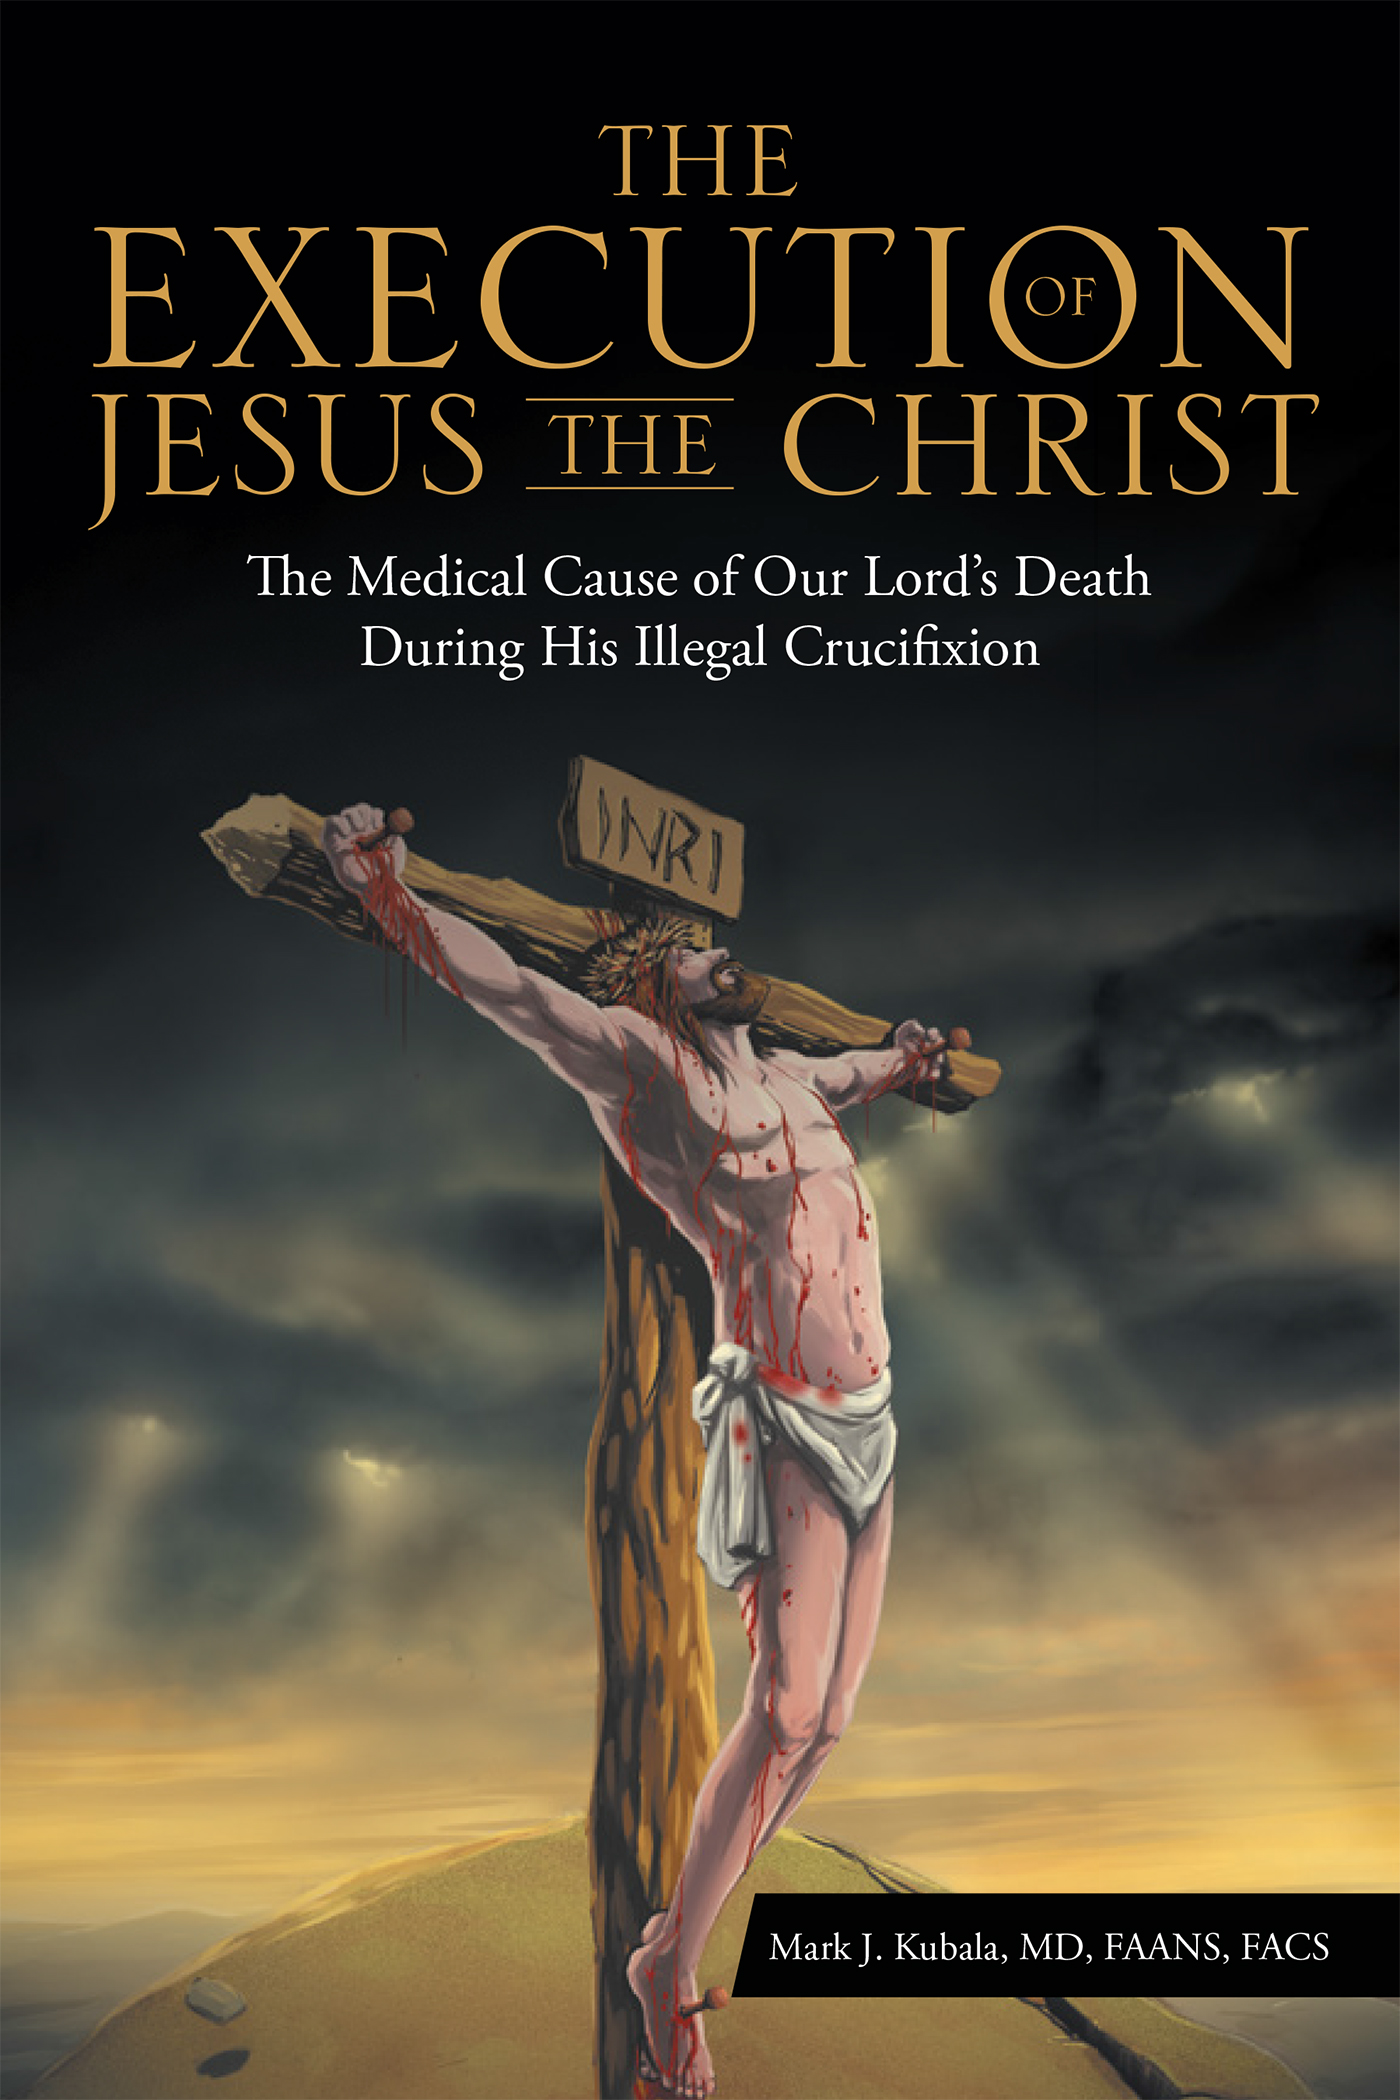 a medical perspective on the crucifixion of jesus christ